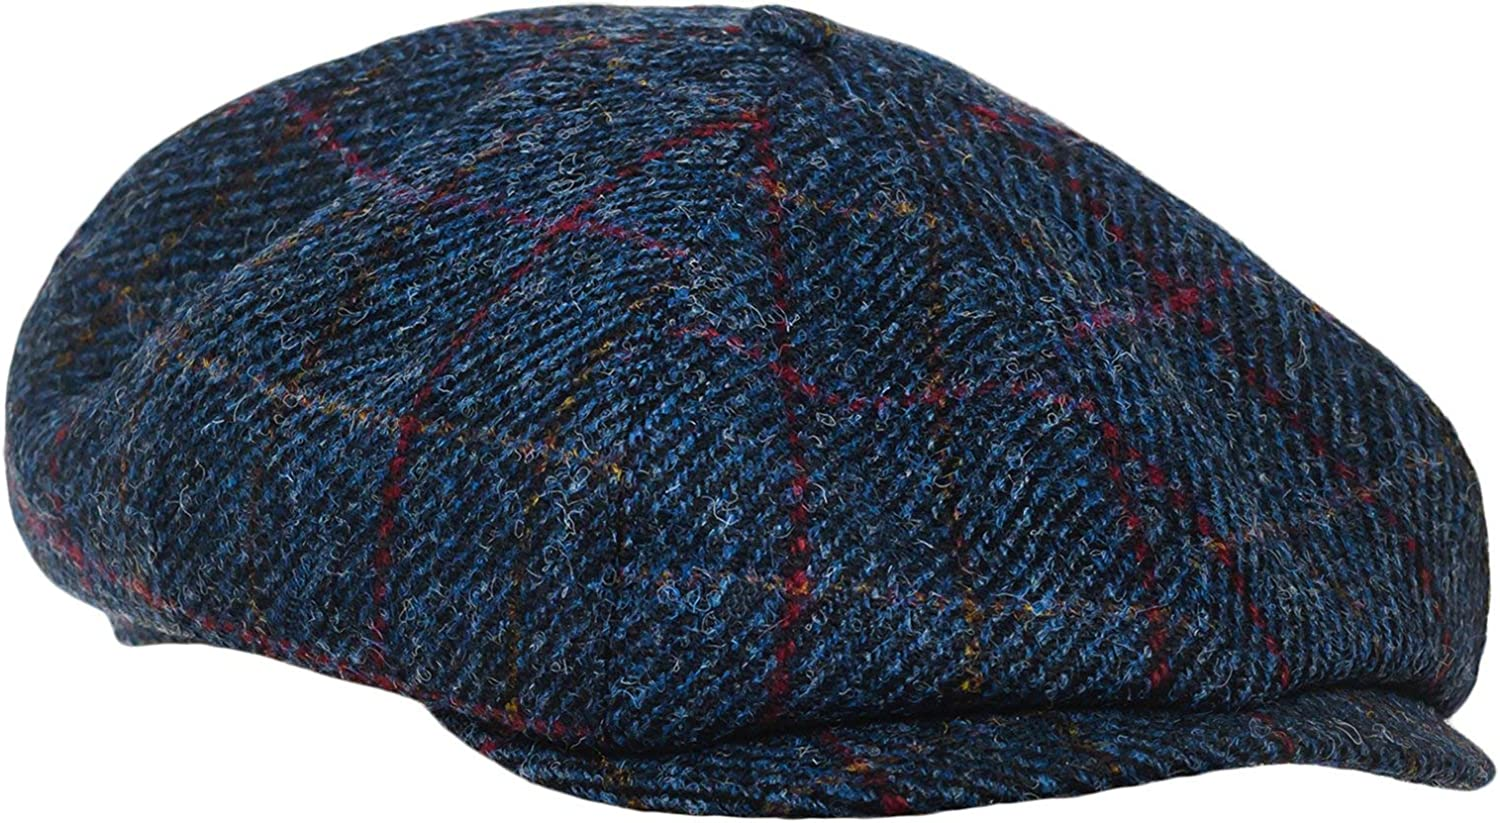 Sterkowski Shelby All stores are sold Cap 100% Harris Newsboy for Men Directly managed store Tweed